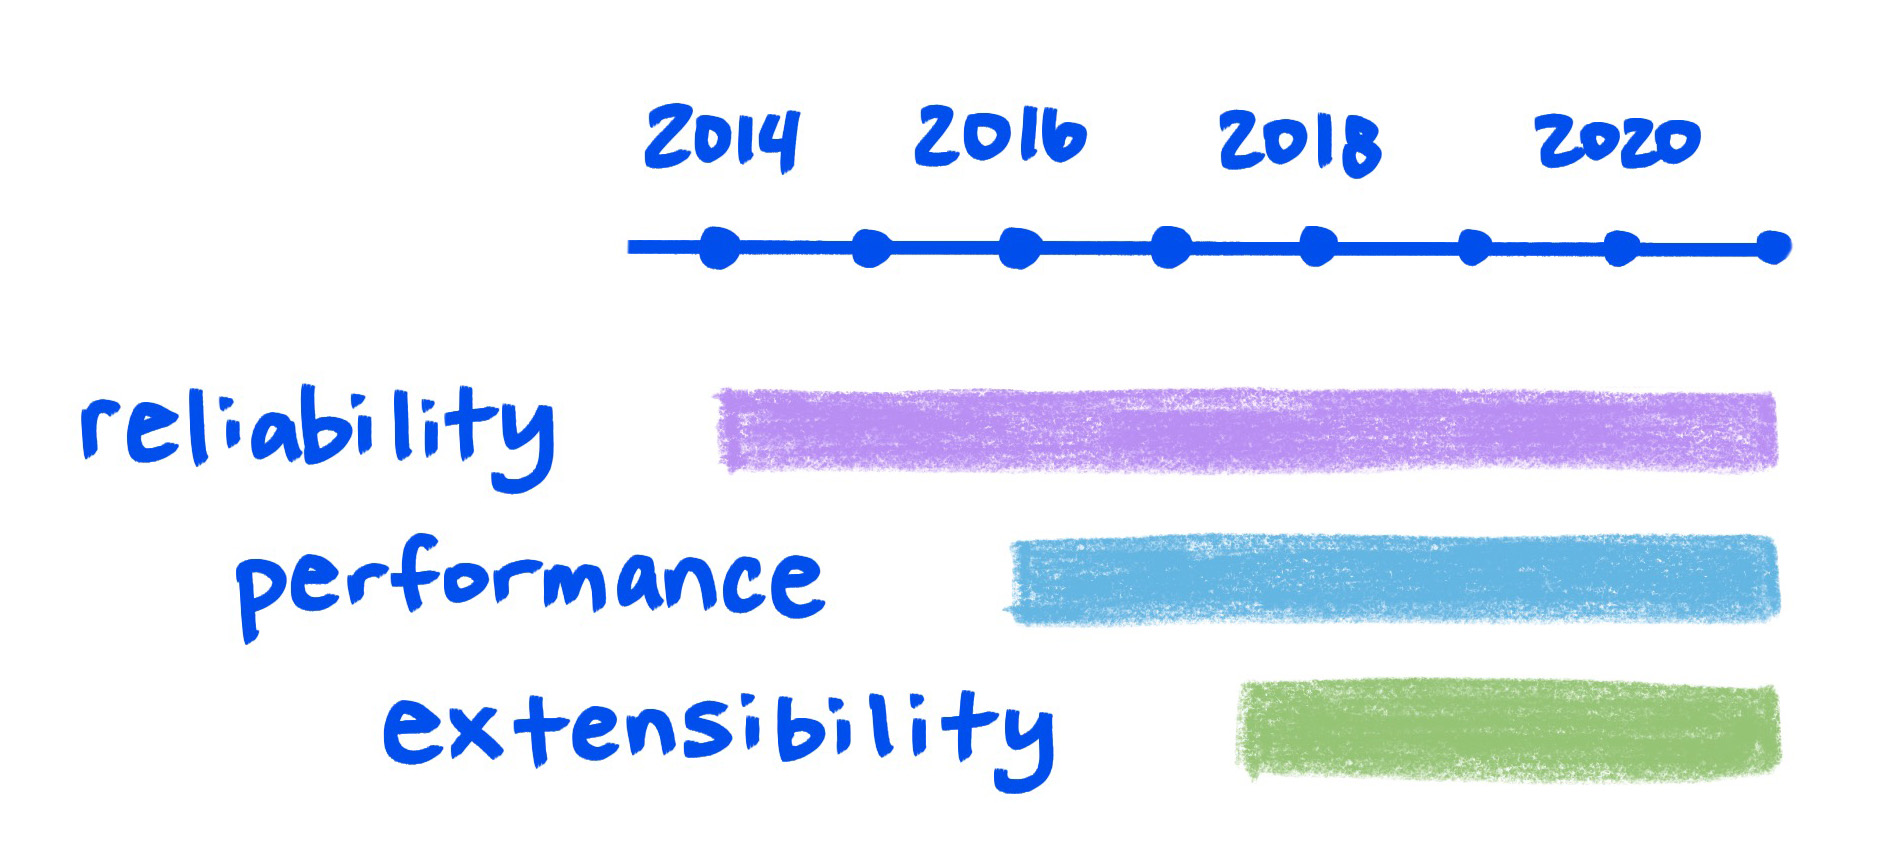 Sketch graph shows reliability, performance, and extensibility improving over time